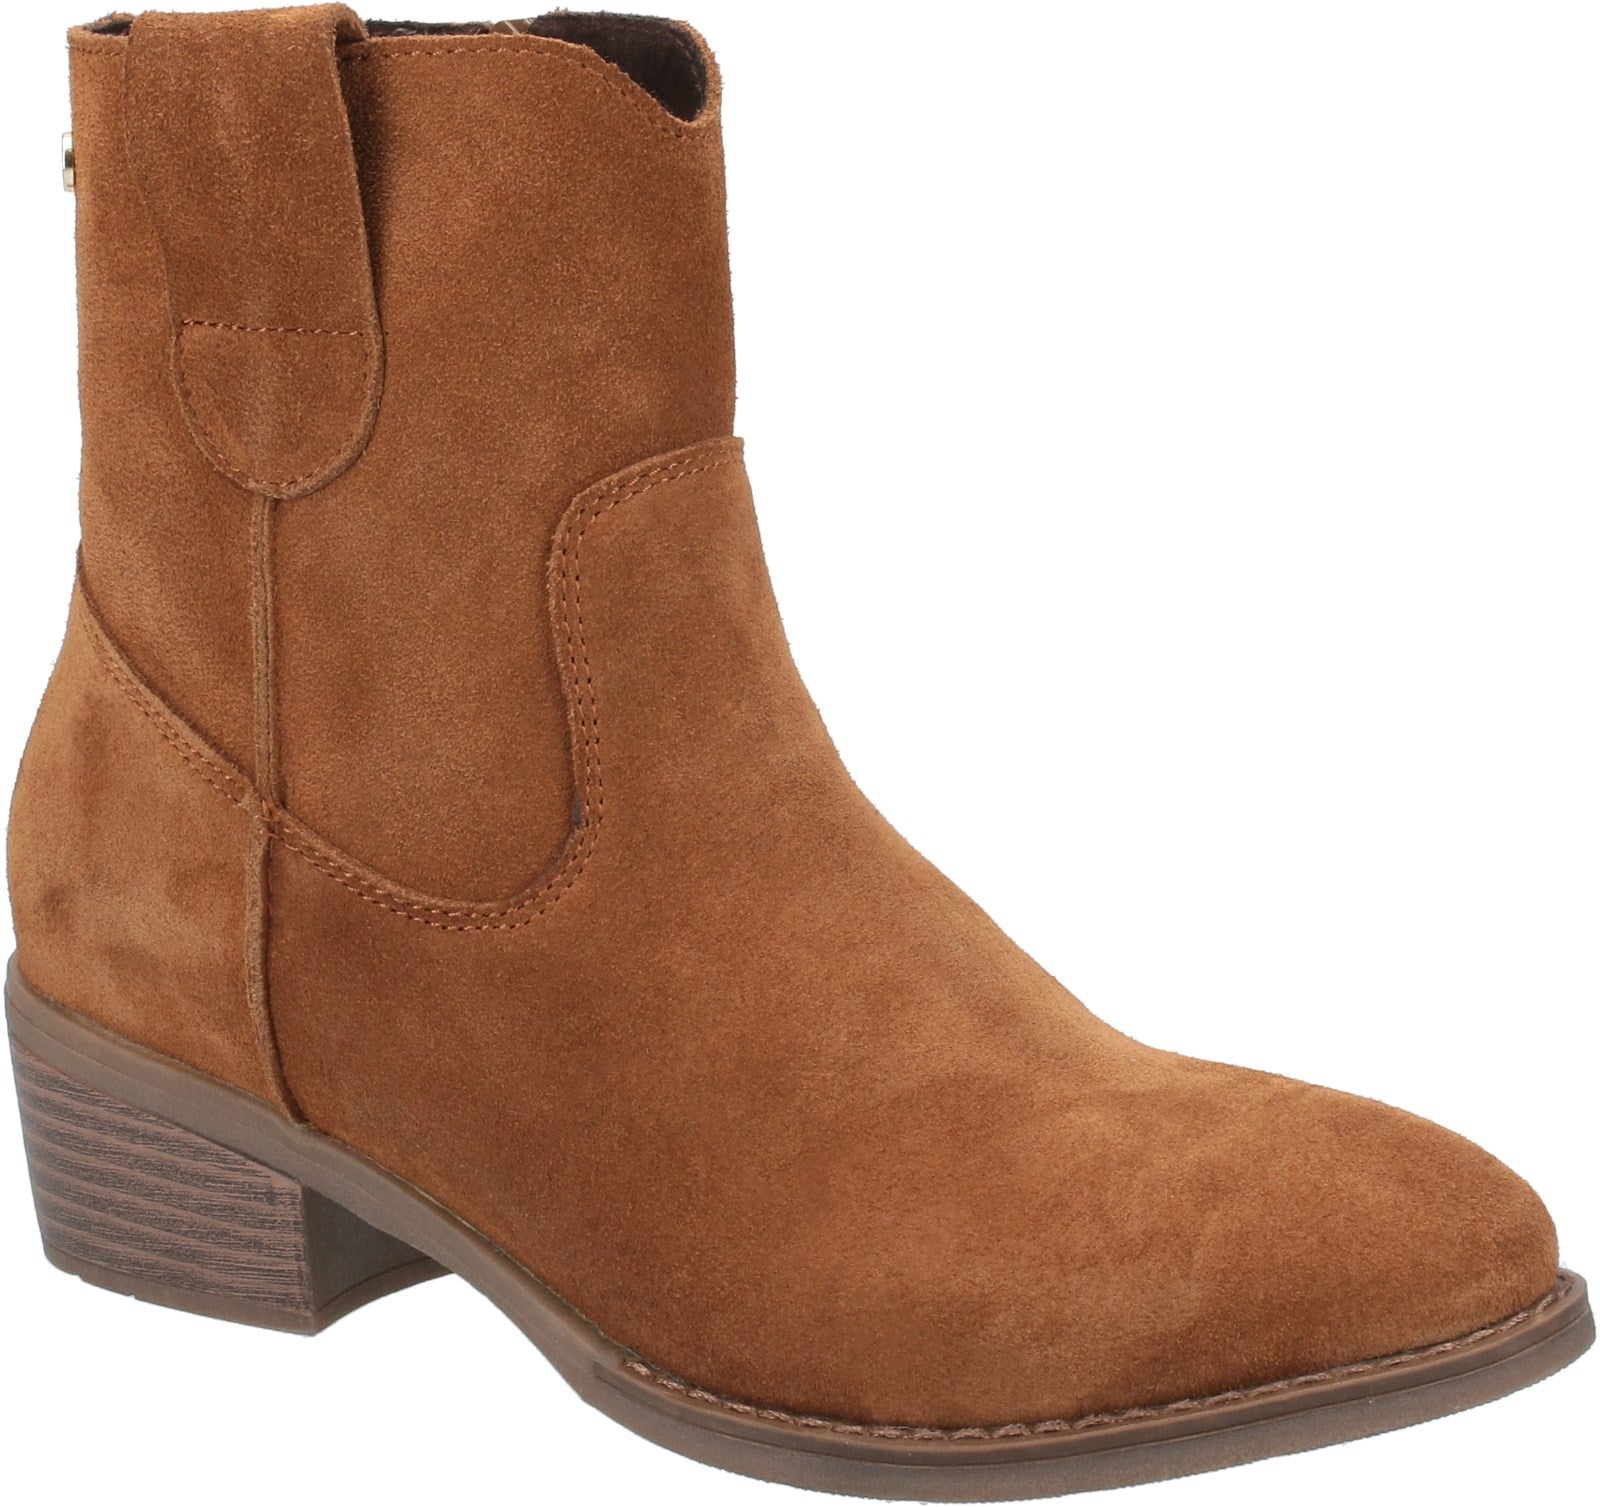 TAN IVA ANKLE BOOTS